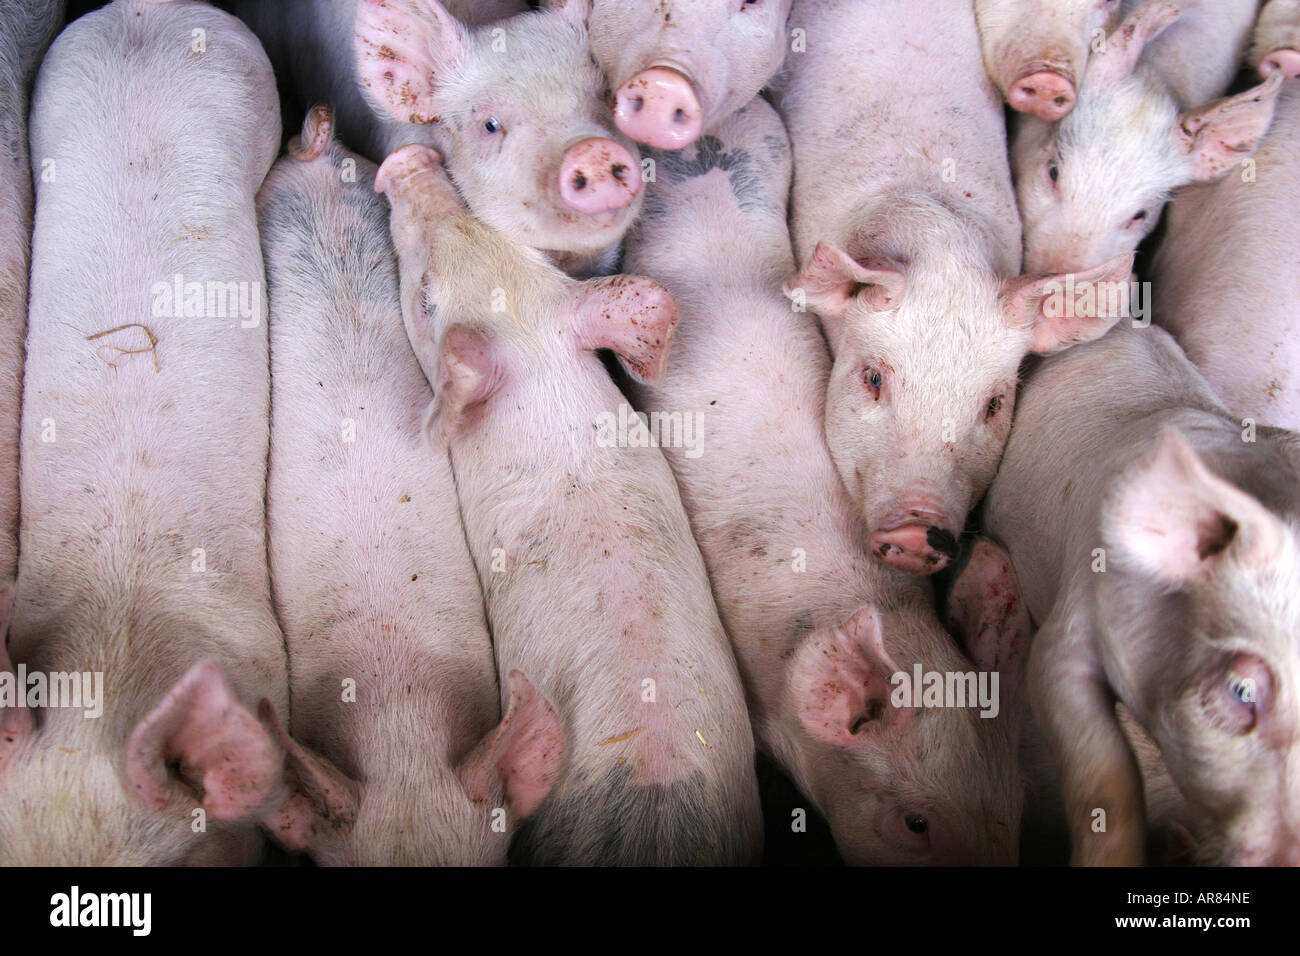 Young pigs tight together. Could be concept for when it is overcrowded - Stock Image